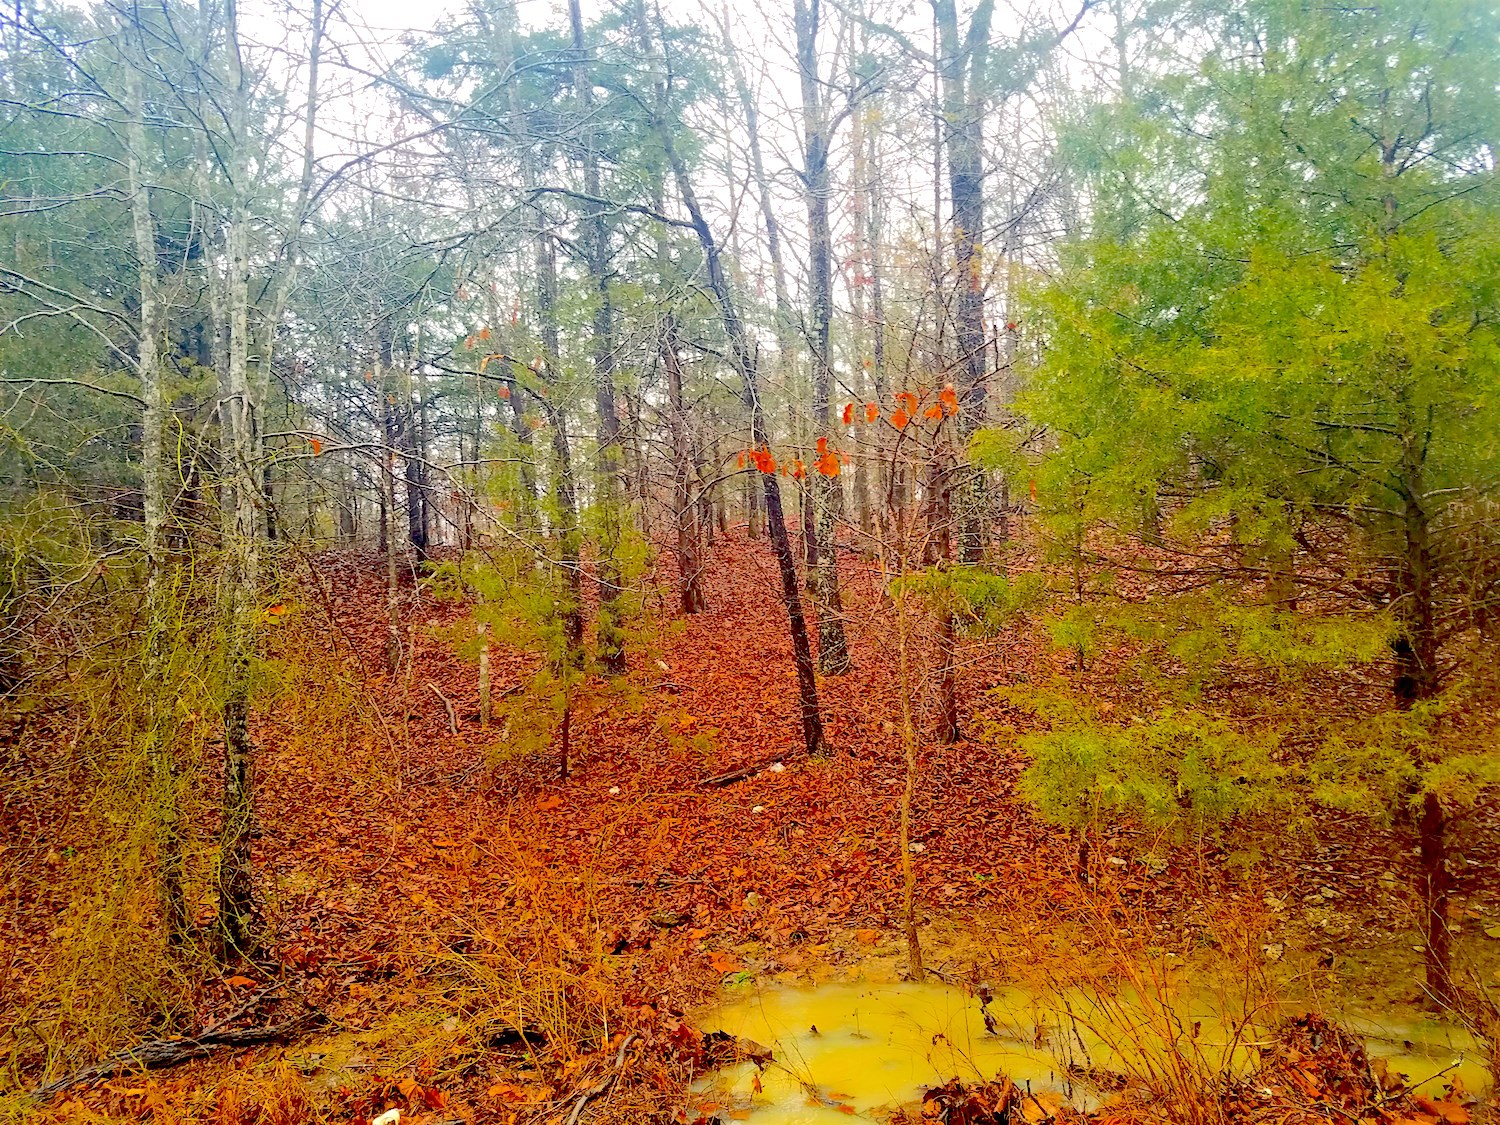 Recreational Property Outside of Salem, Arkansas For Sale